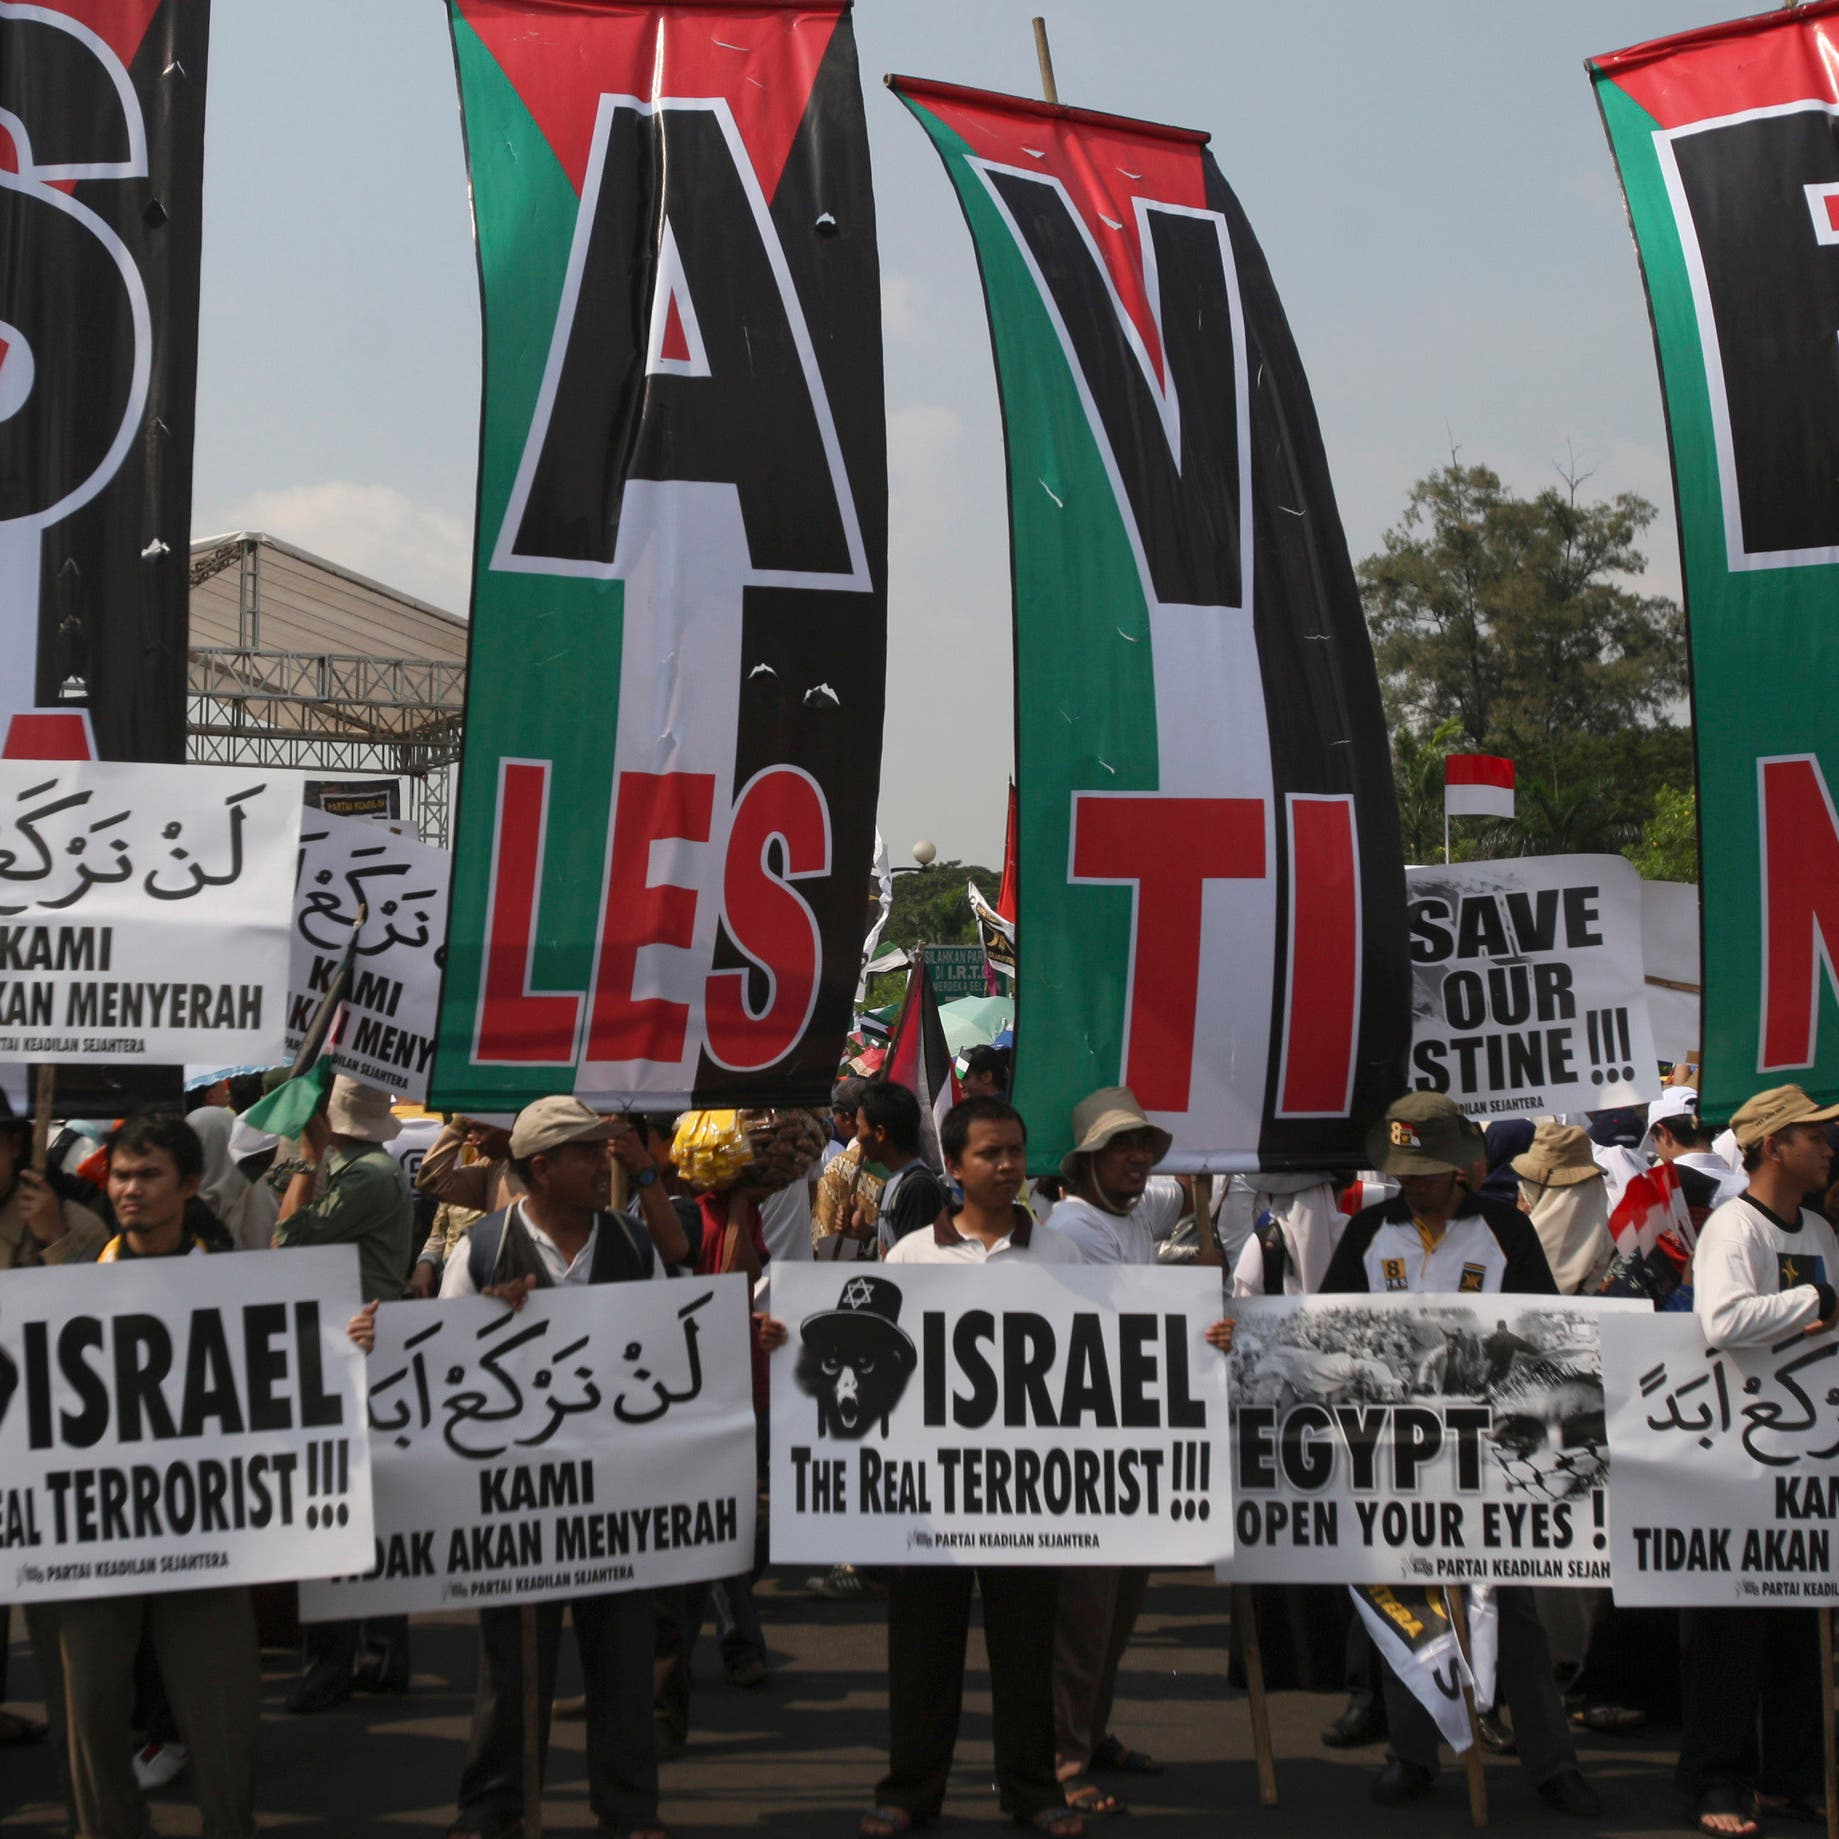 Western public opinion in light of shocking images from Jerusalem to Gaza